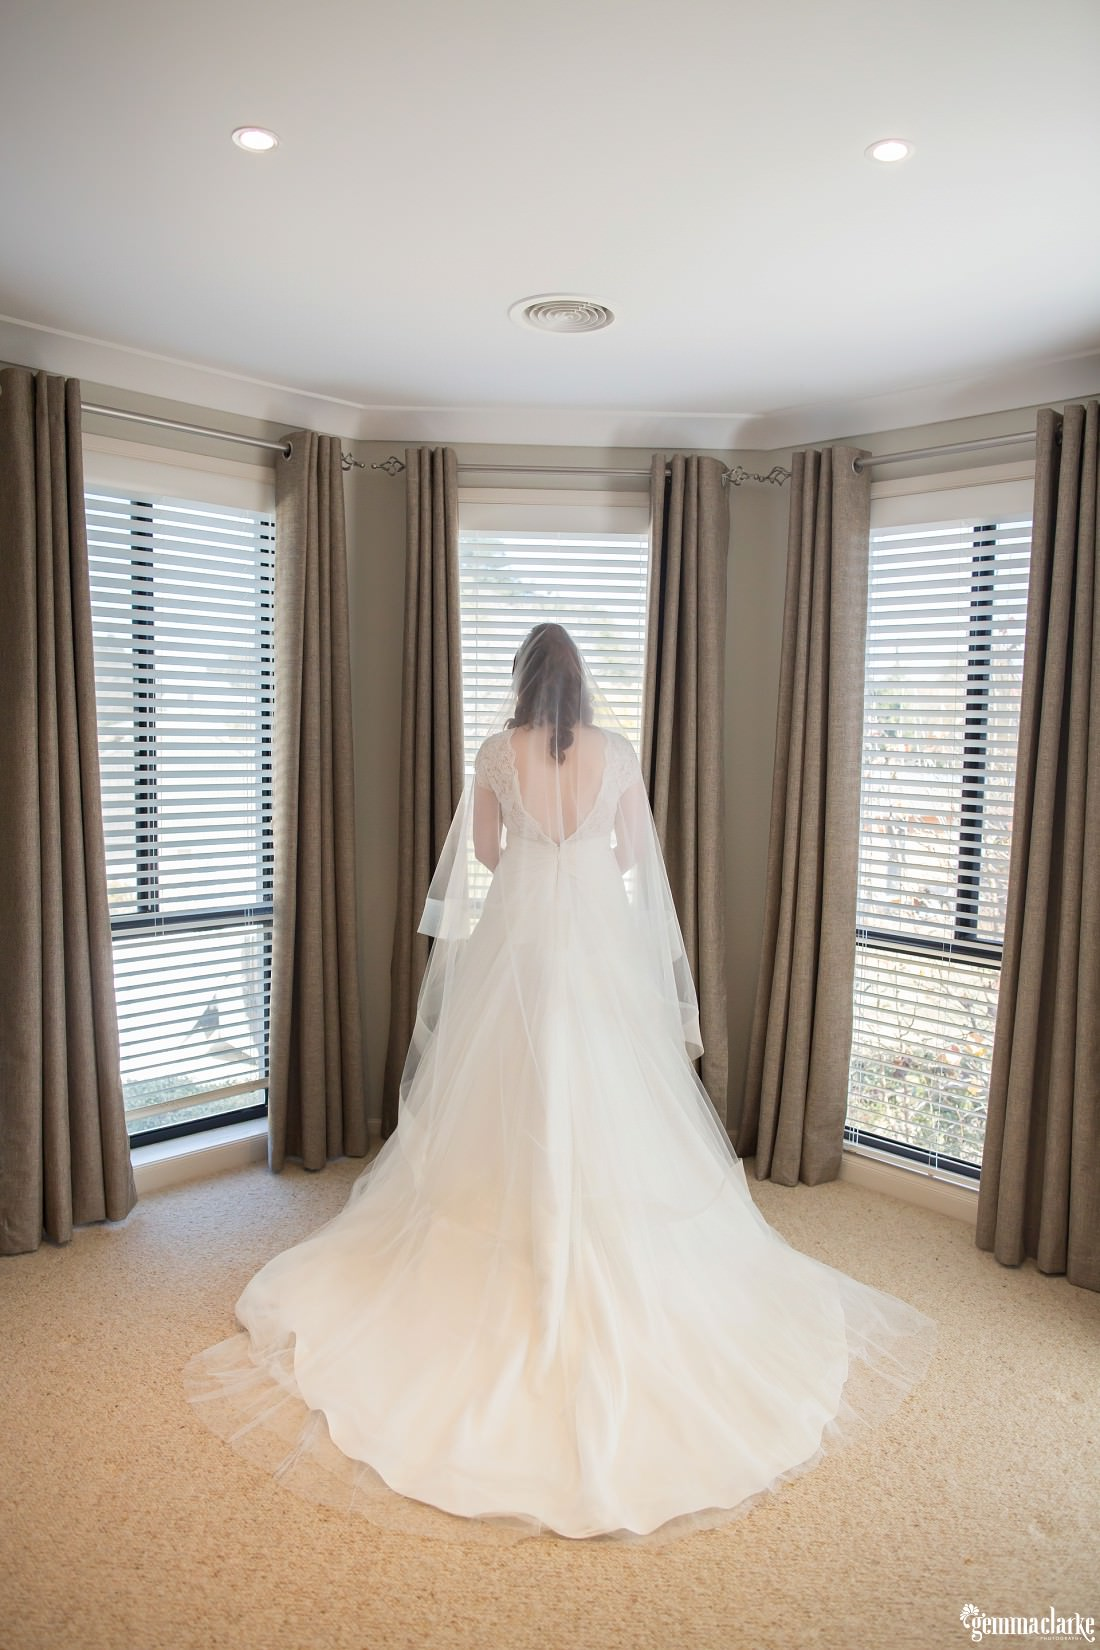 gemmaclarkephotography_exeter-wedding_sylvan-glen-wedding_celeste-and-deane_0007